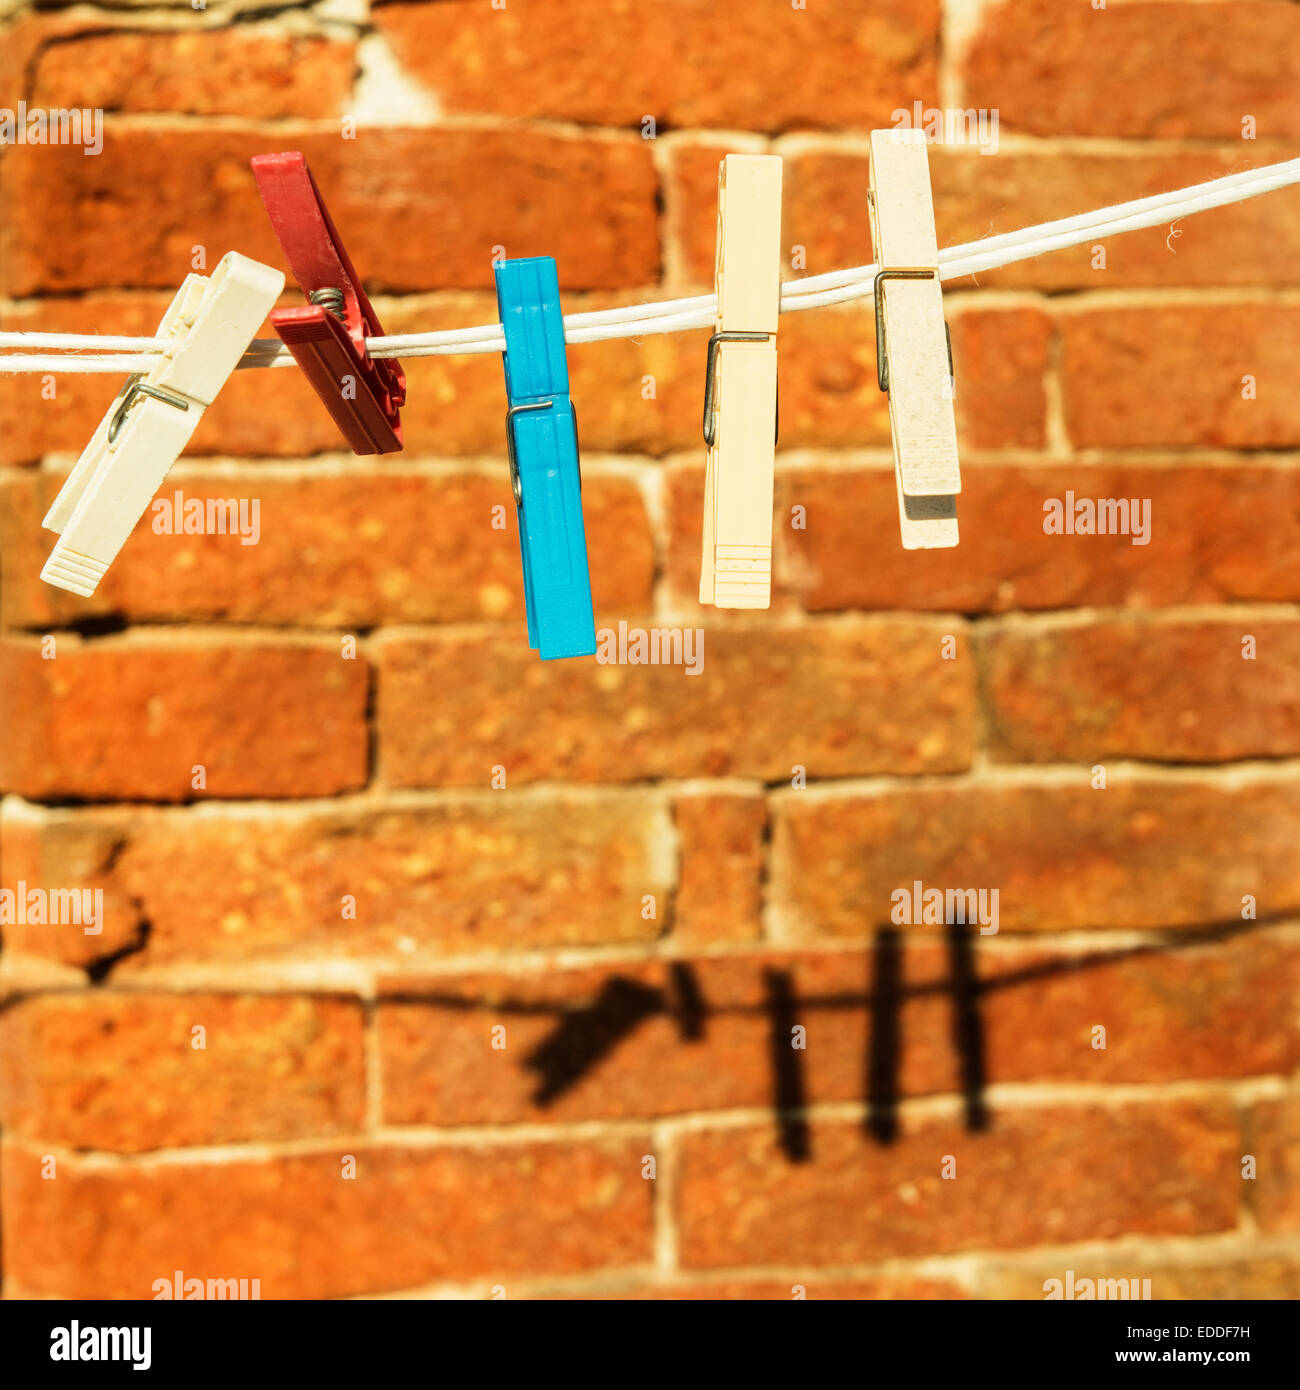 pegs and the shadows on the wall - Stock Image